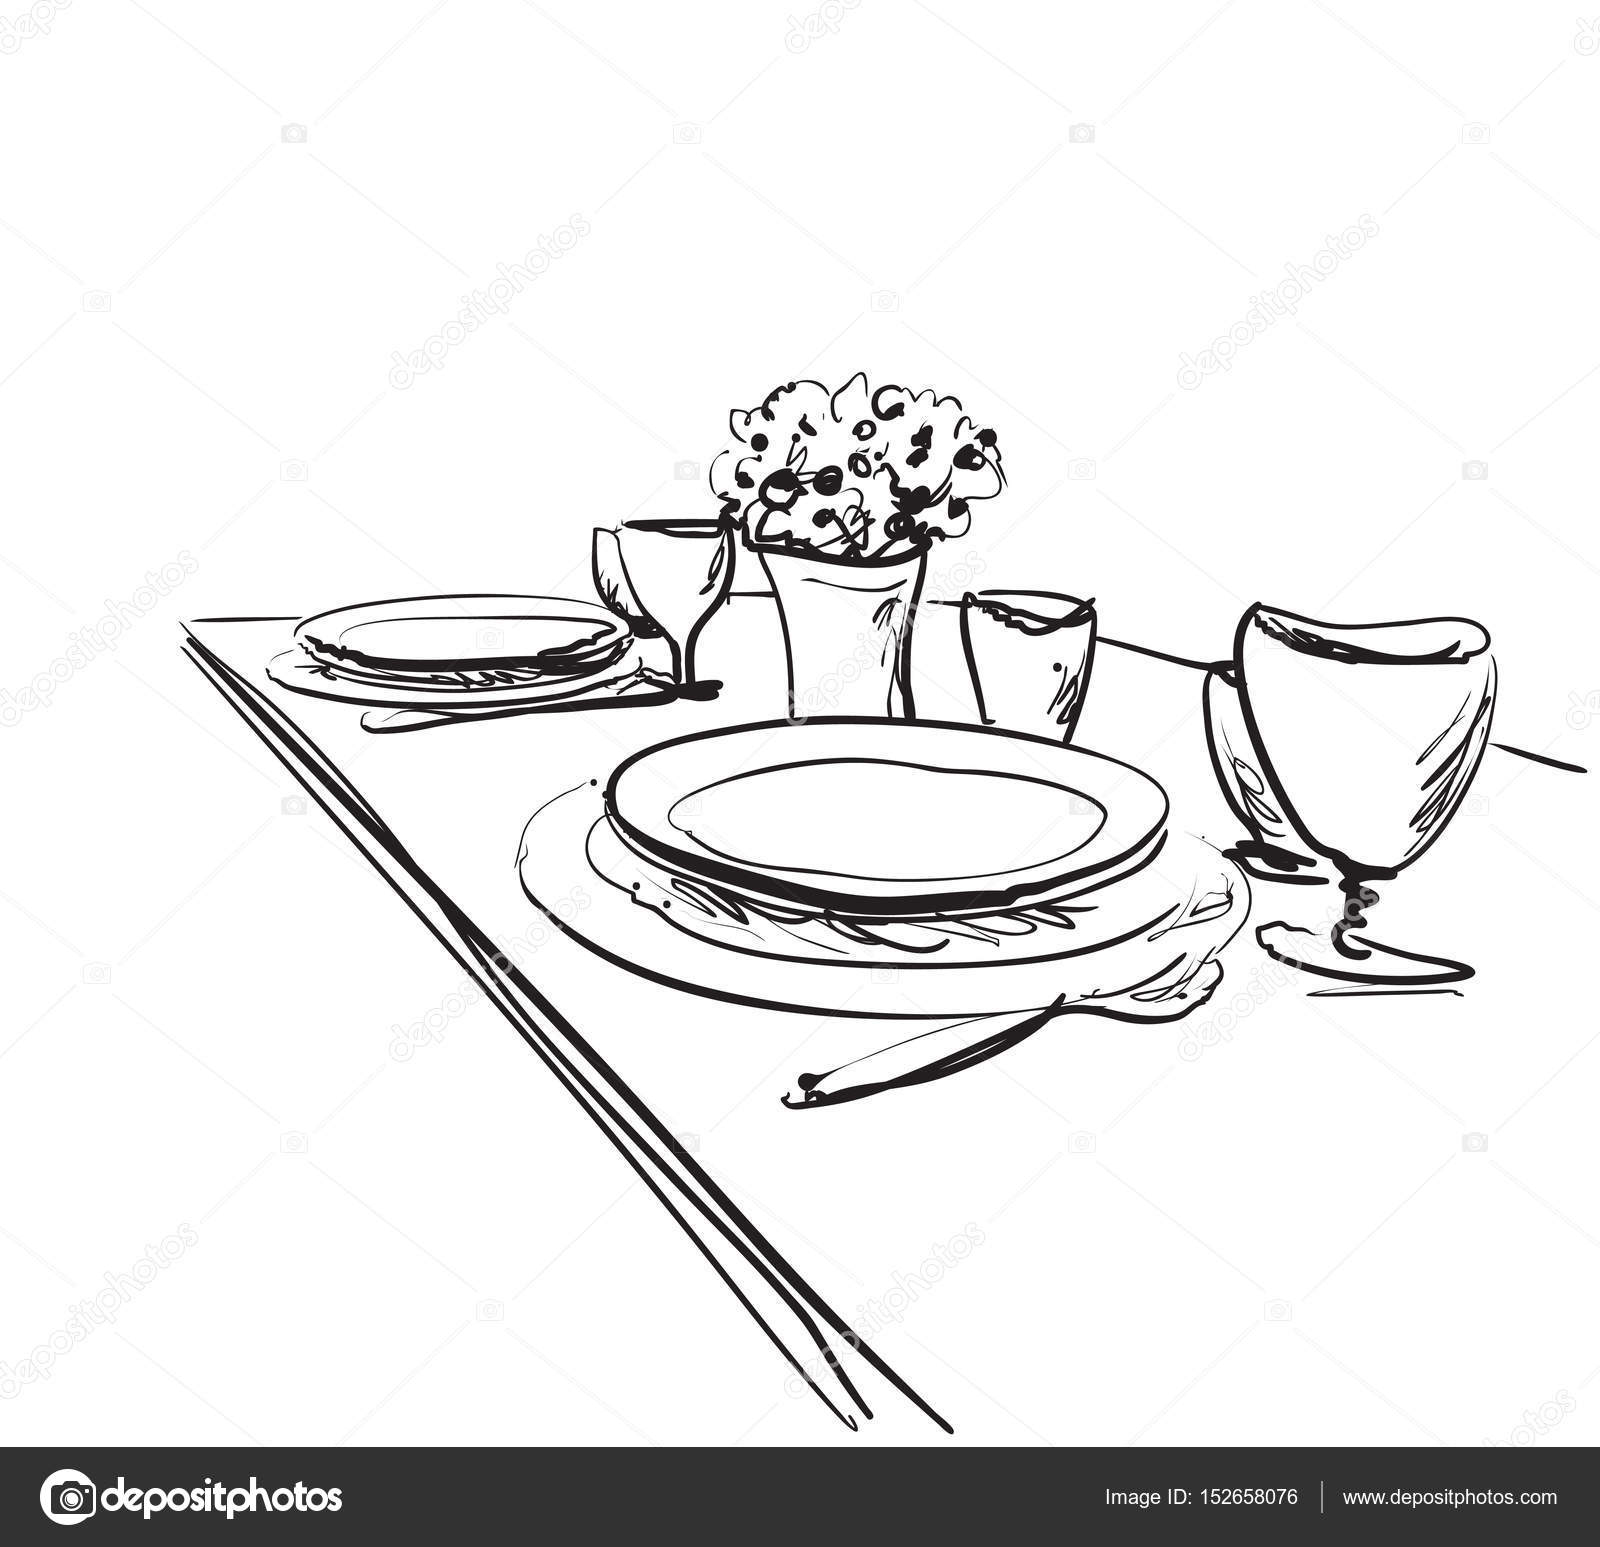 Table setting set. Weekend breakfast or dinner. u2014 Stock Vector  sc 1 st  Depositphotos & Table setting set. Weekend breakfast or dinner. u2014 Stock Vector ...